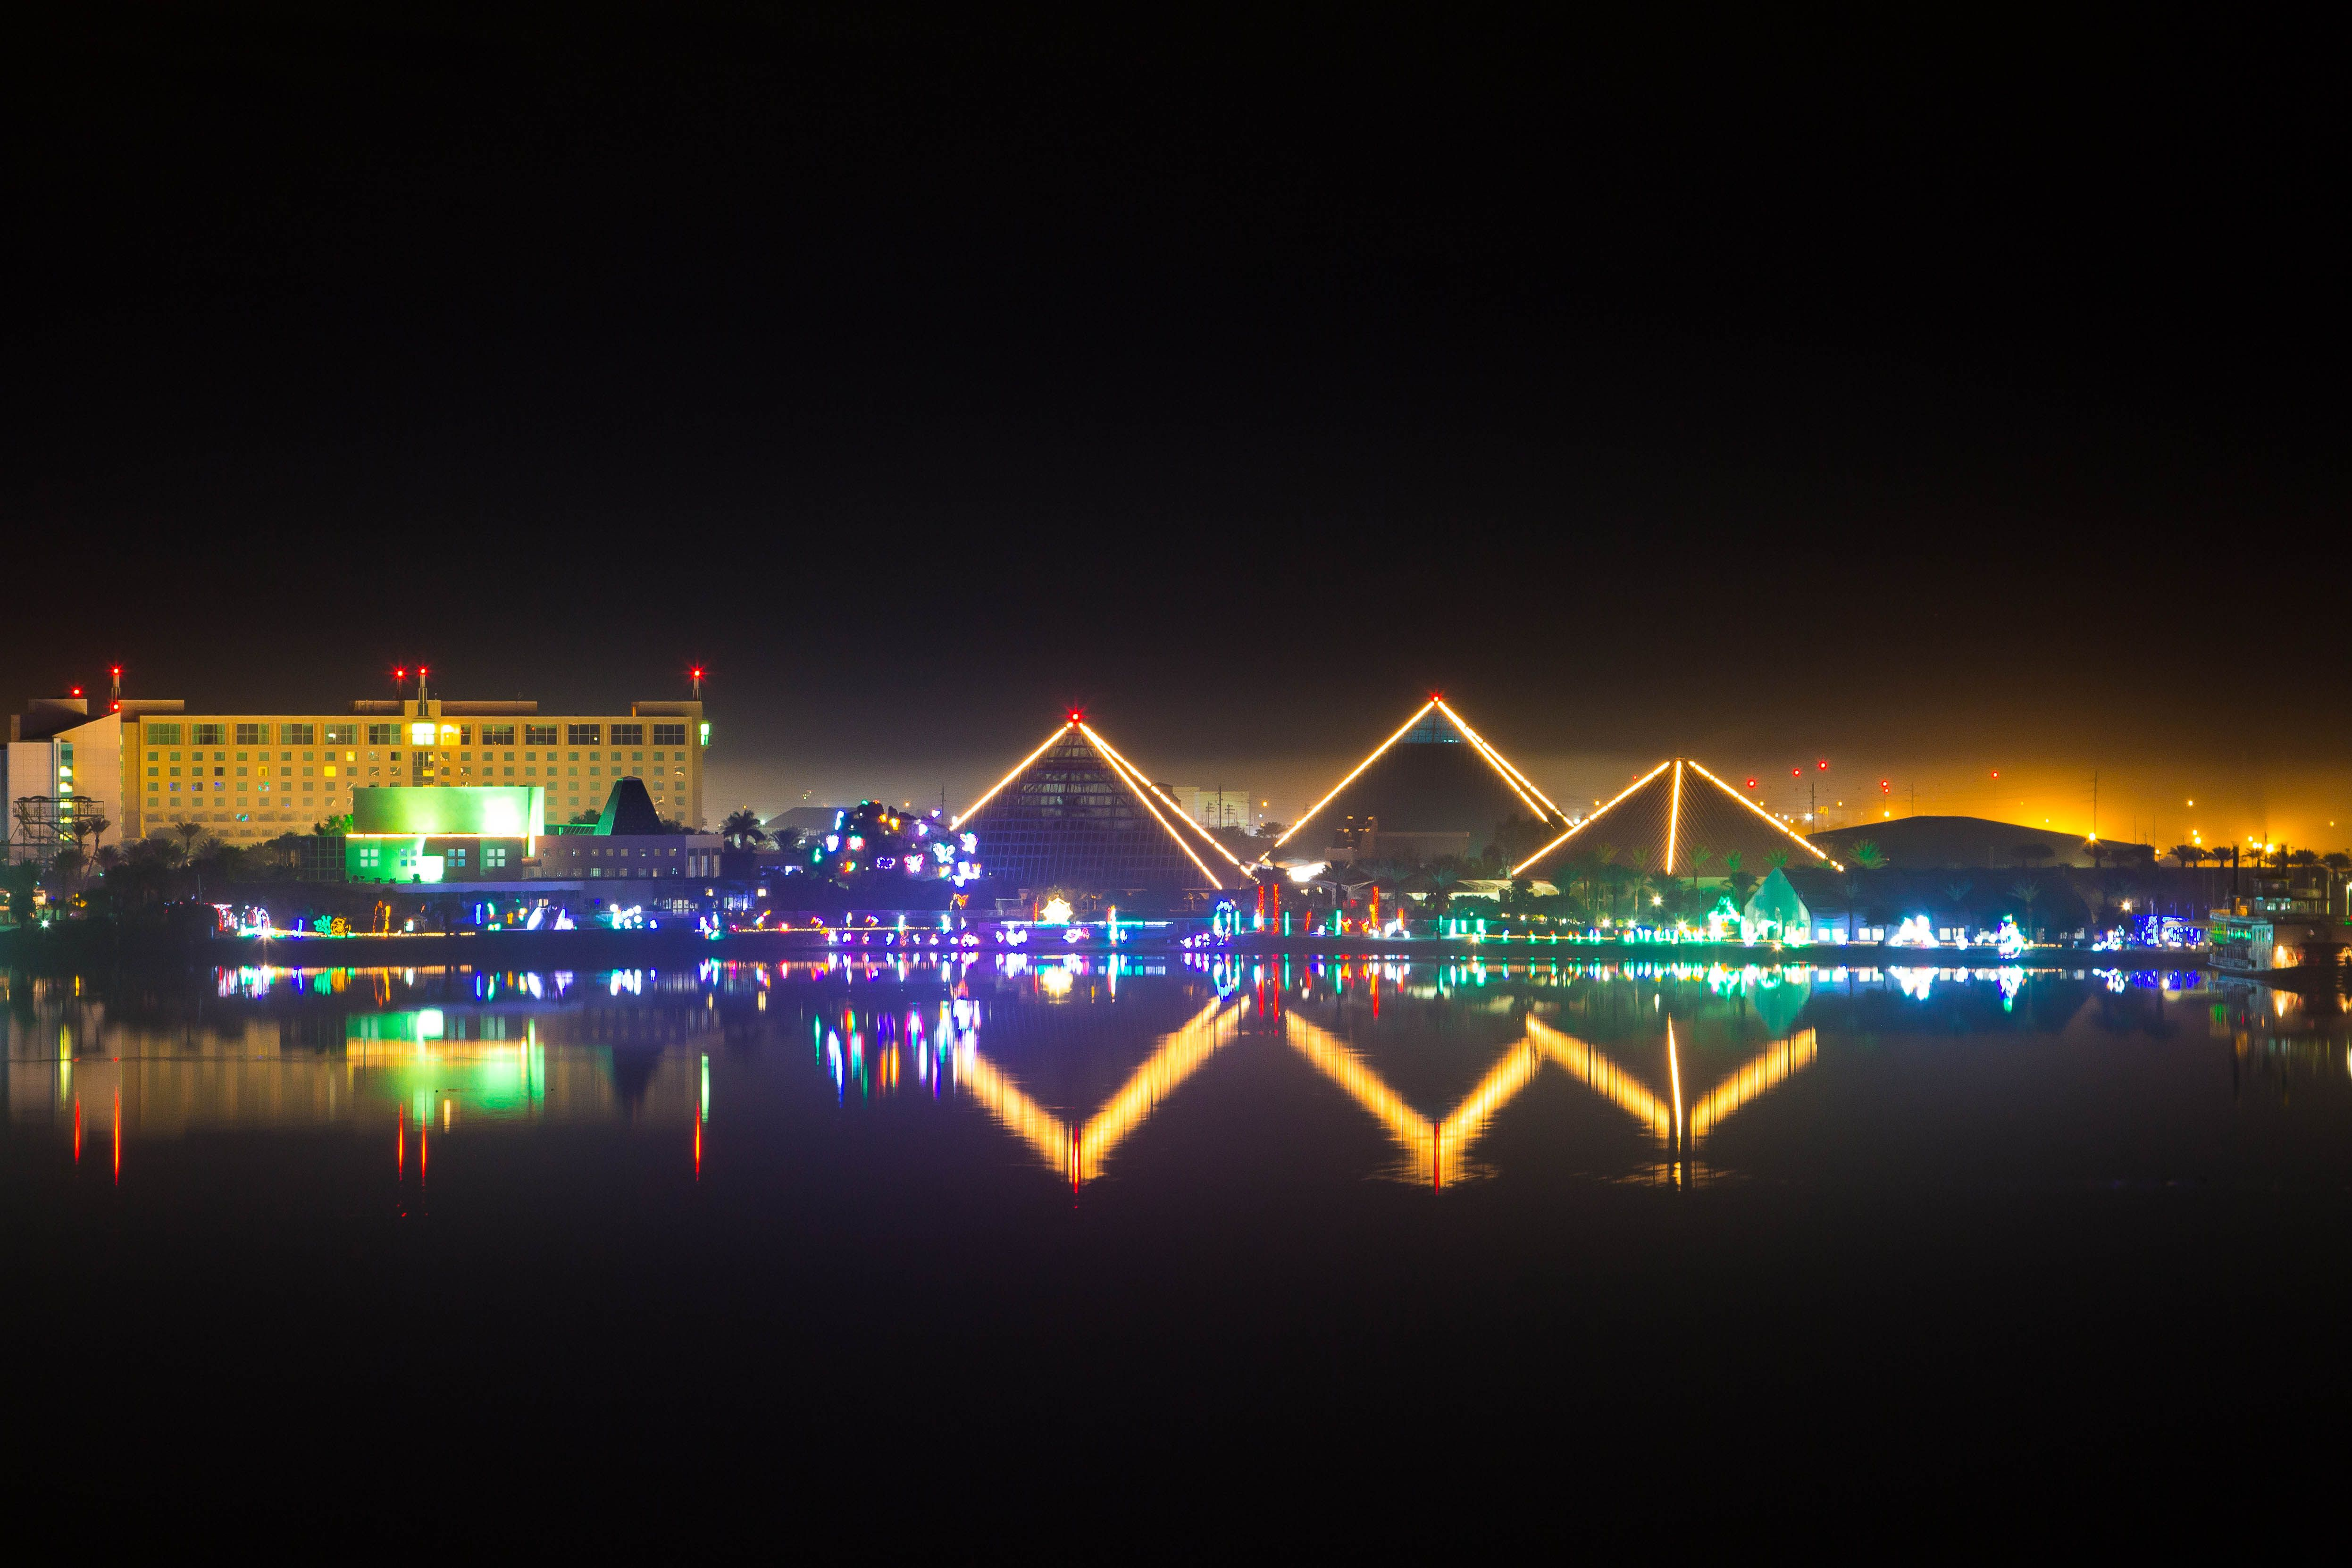 The Moody Gardens Pyramids during Festival of Lights Christmas